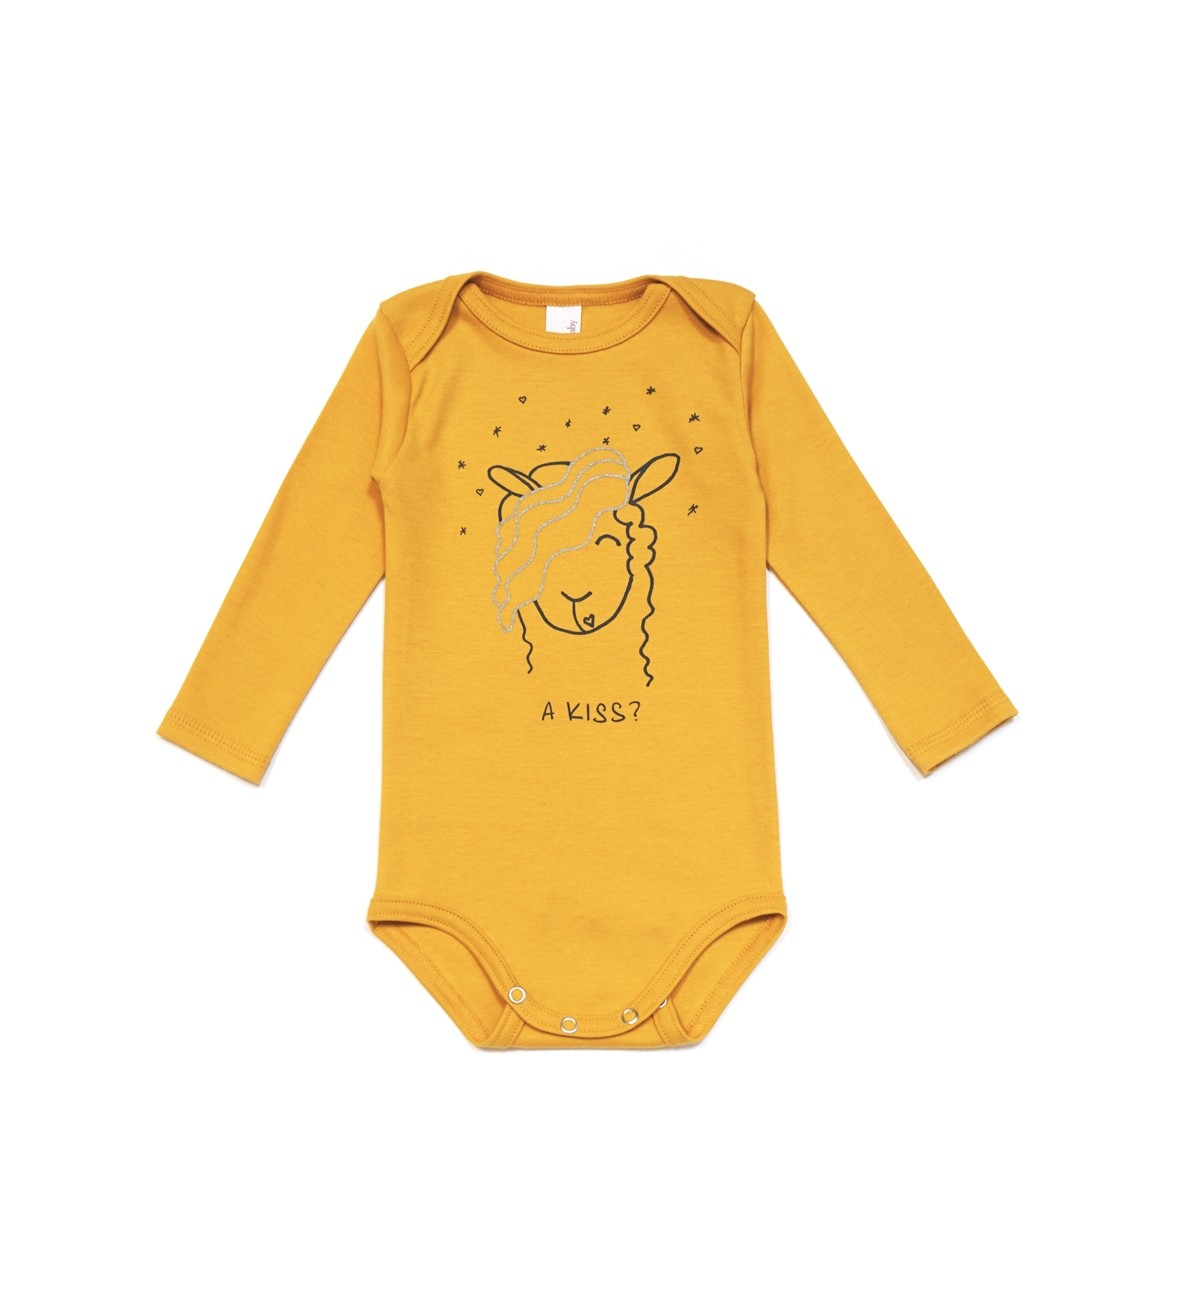 Baobaby body DR – A Kiss Sunny Gold